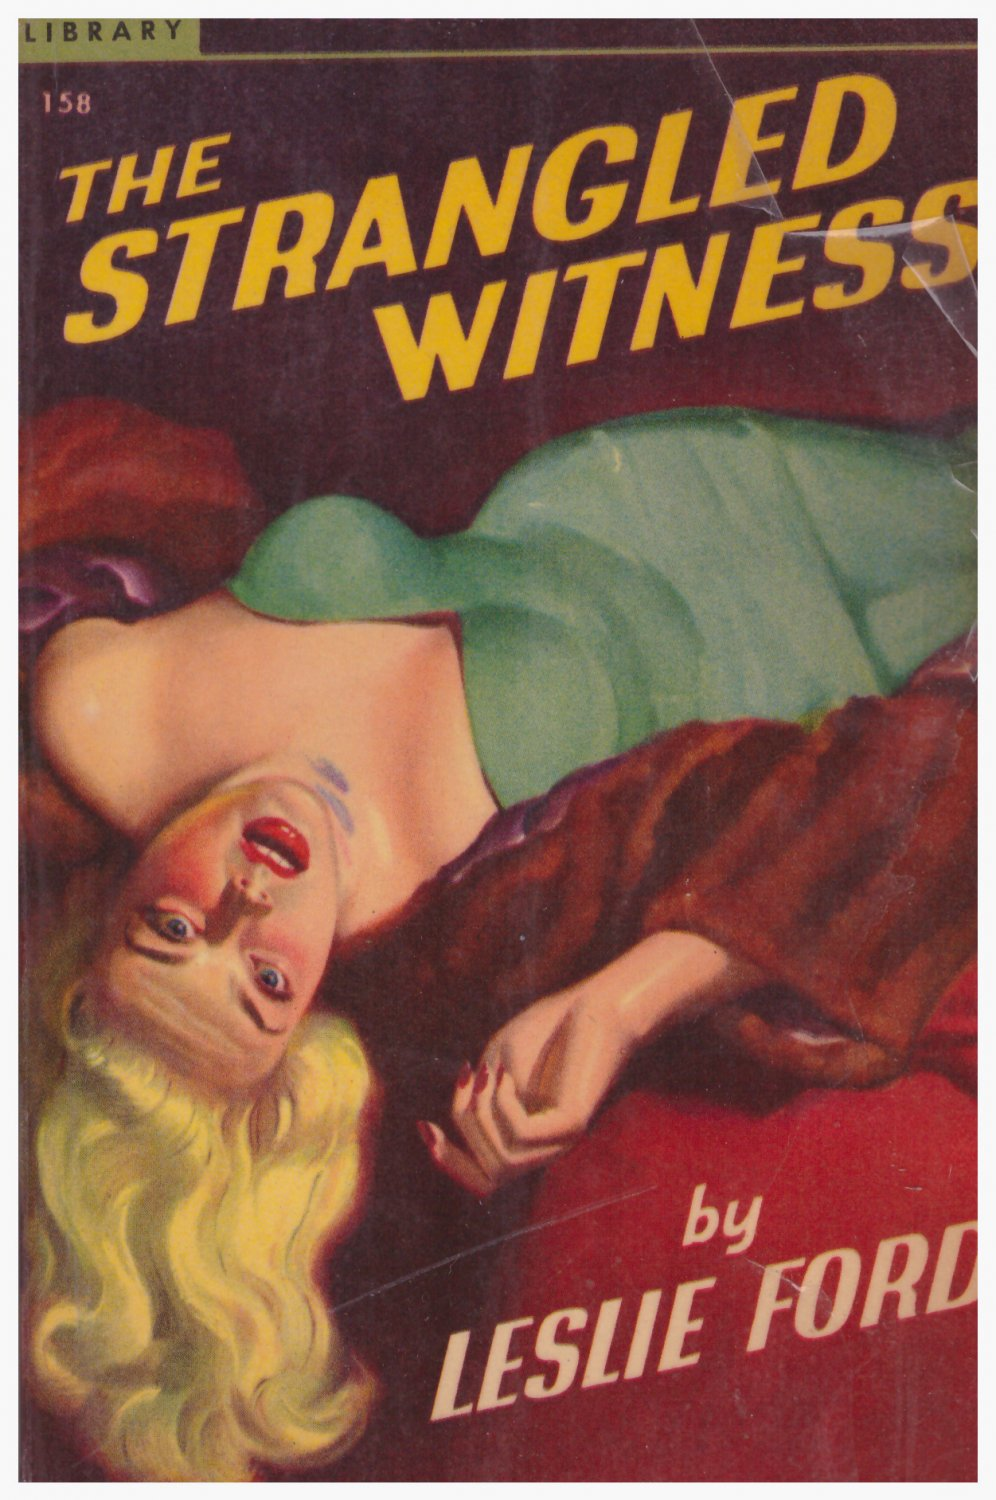 The Strangled Witness Leslie Ford Early Popular Library Paperback